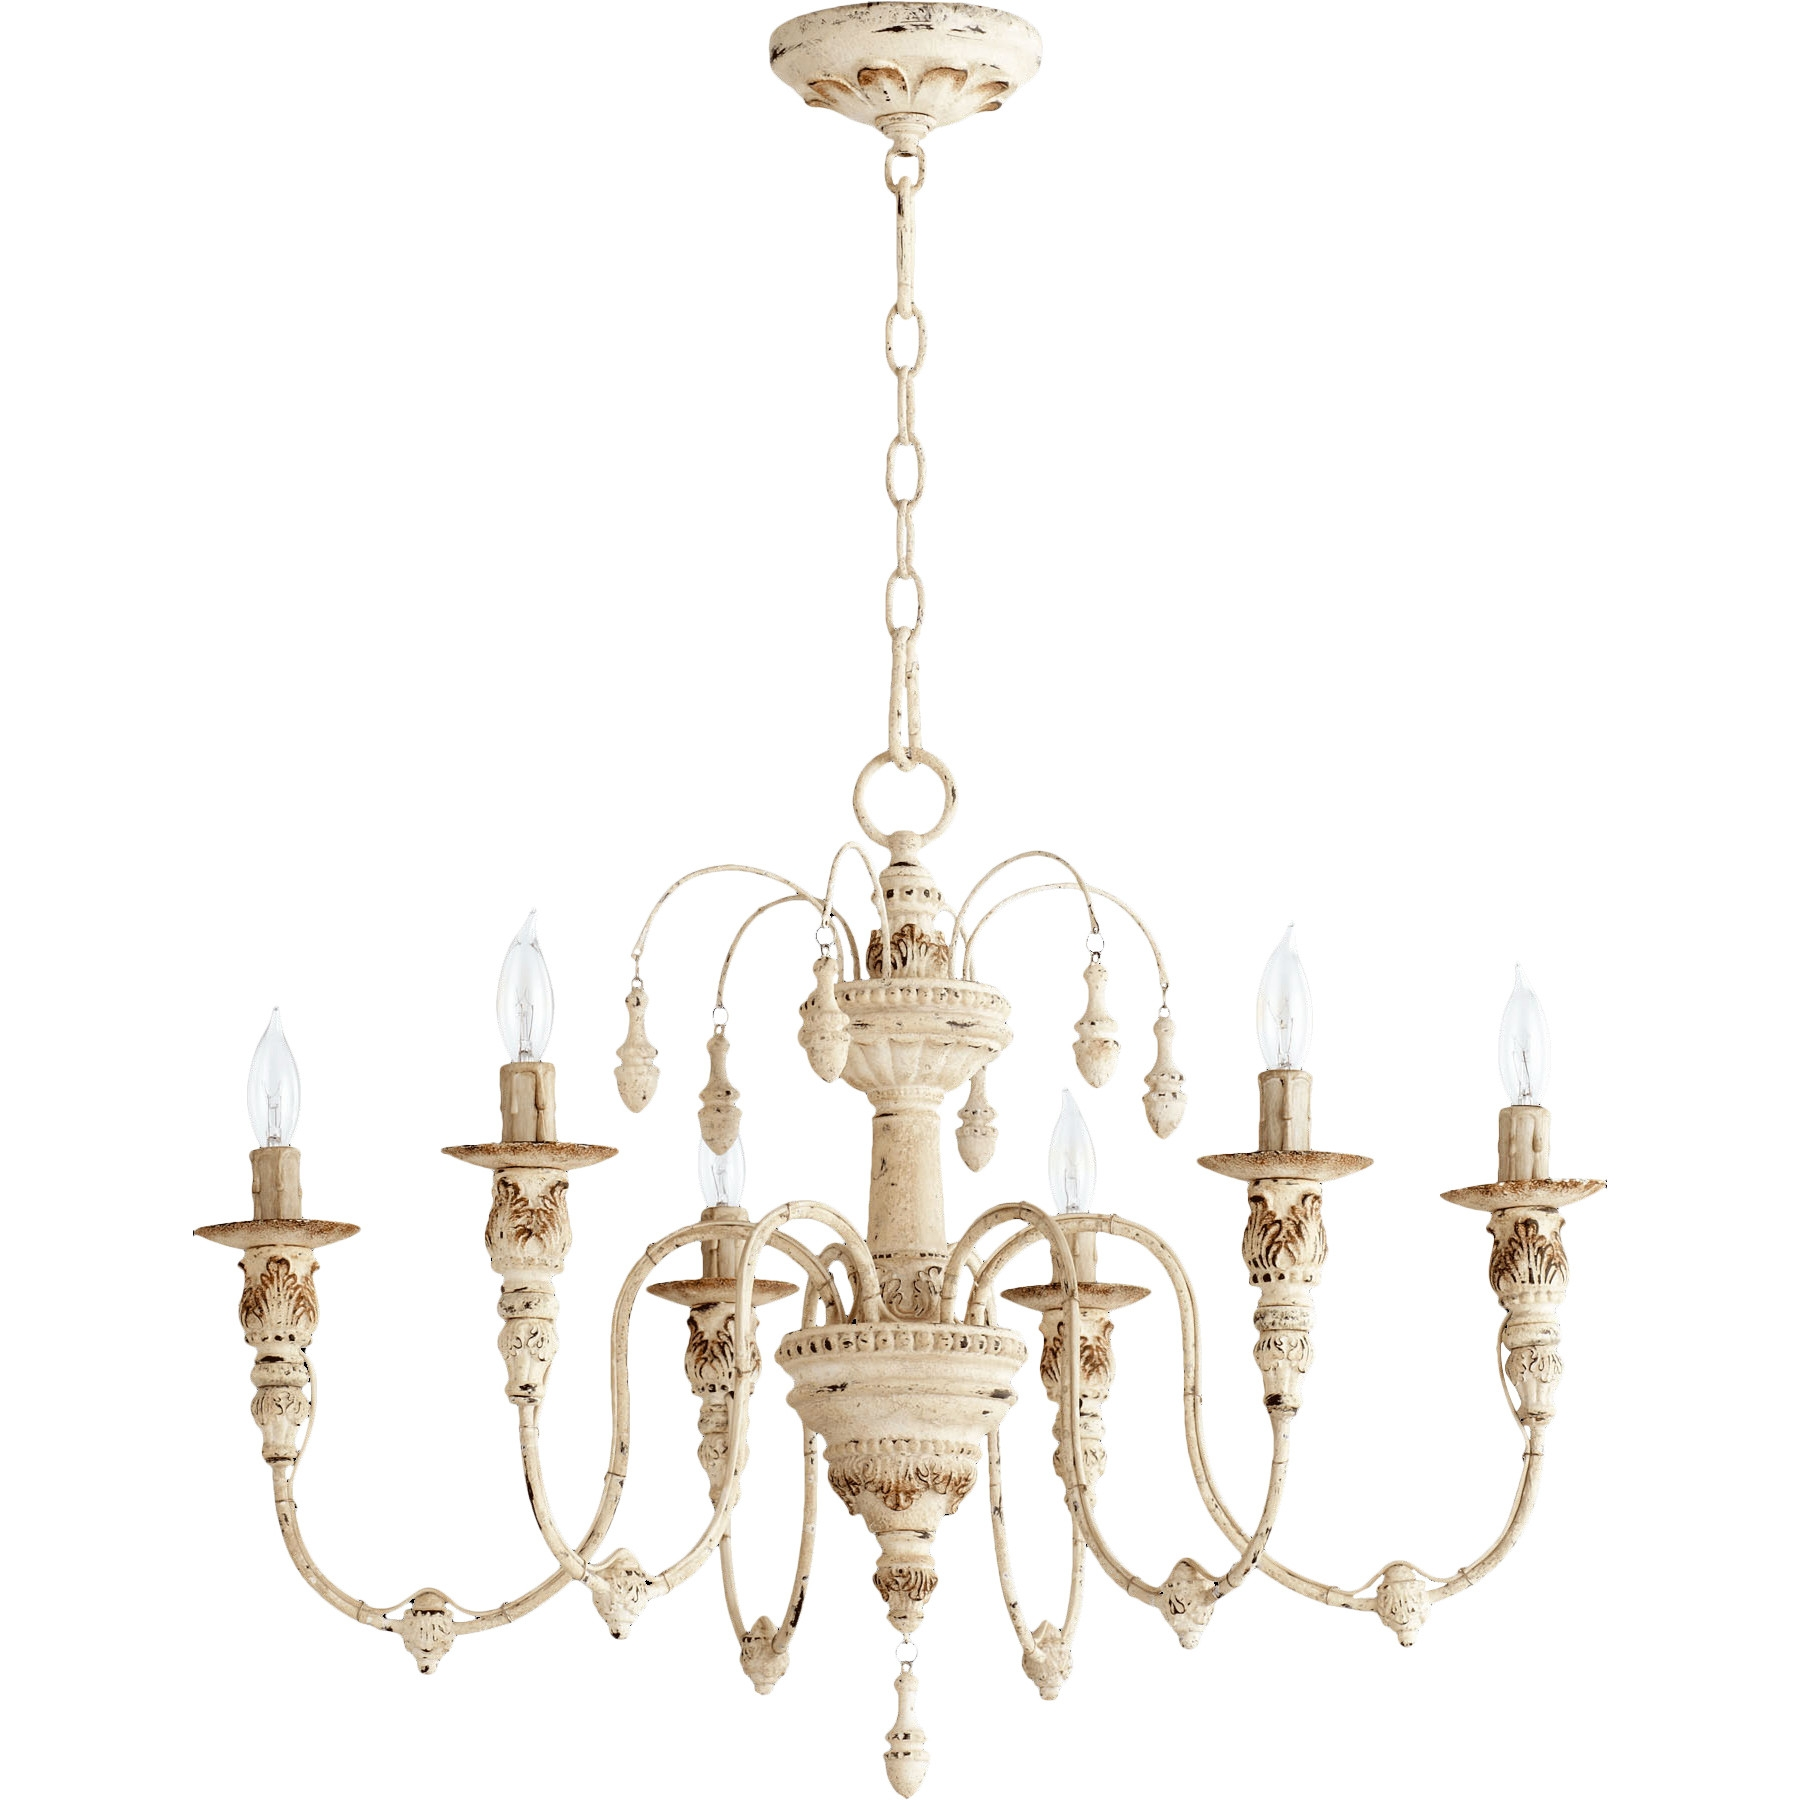 Chandelier Astonishing French Style Chandeliers French Country Intended For French Country Chandeliers (Photo 4 of 25)